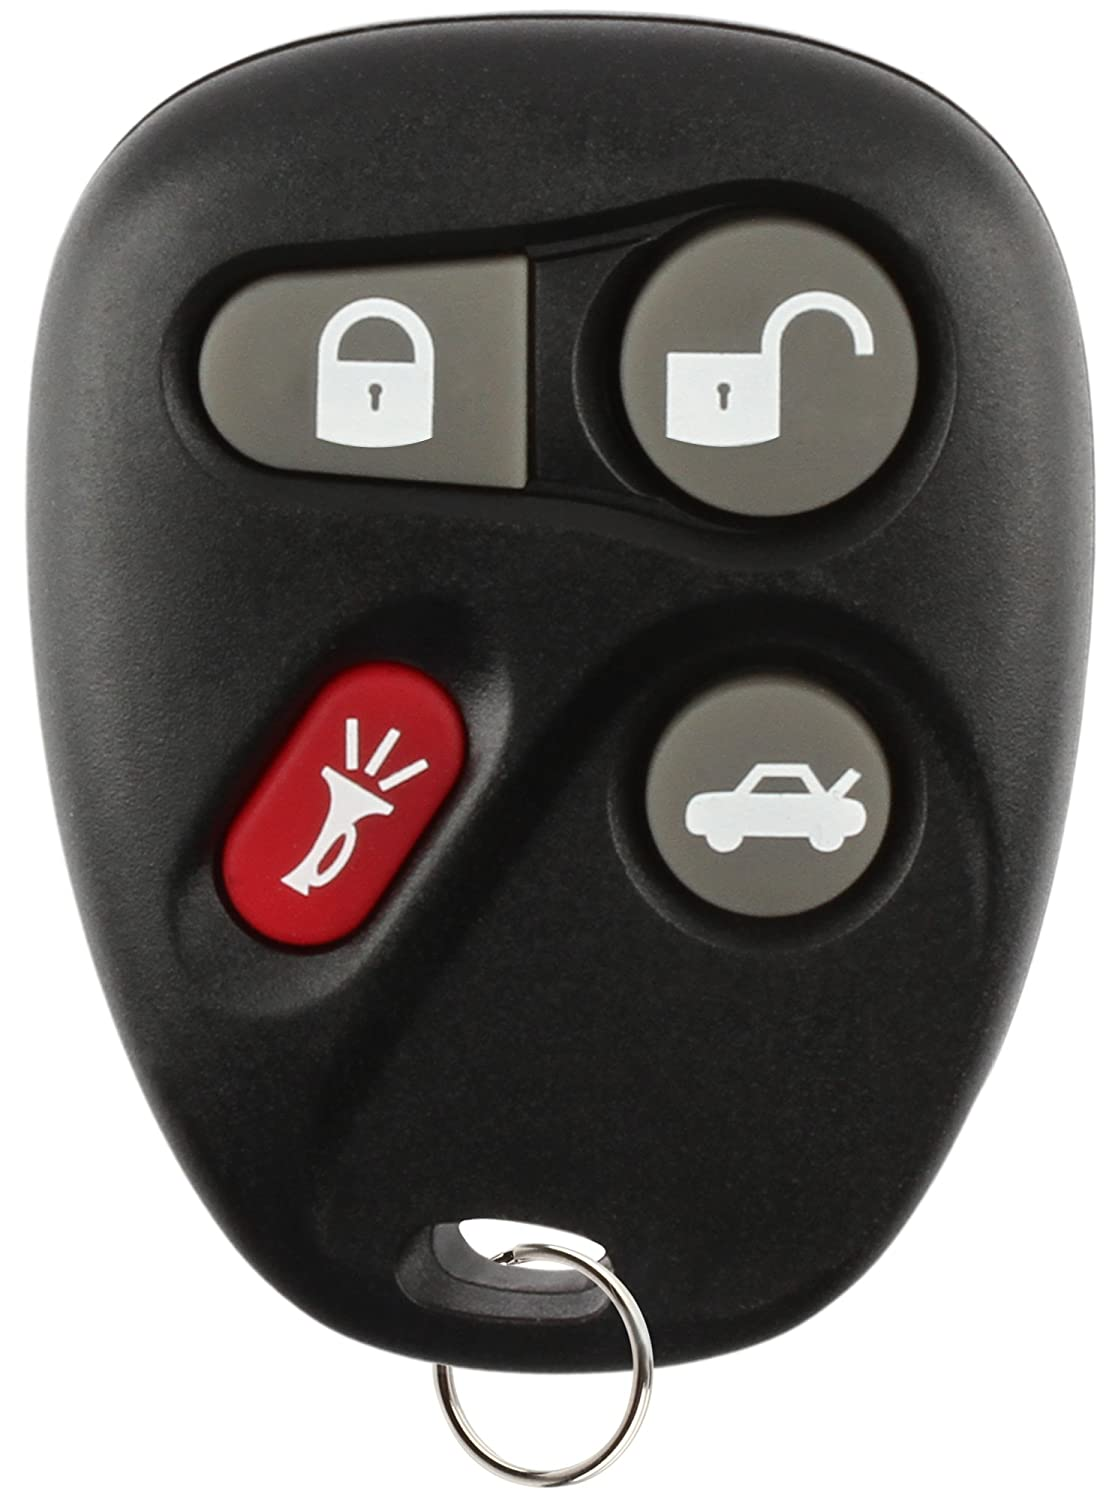 Discount Keyless Replacement Key Fob Car Entry Remote For Sunfire Cavalier CTS L2C0005T 16263074-99